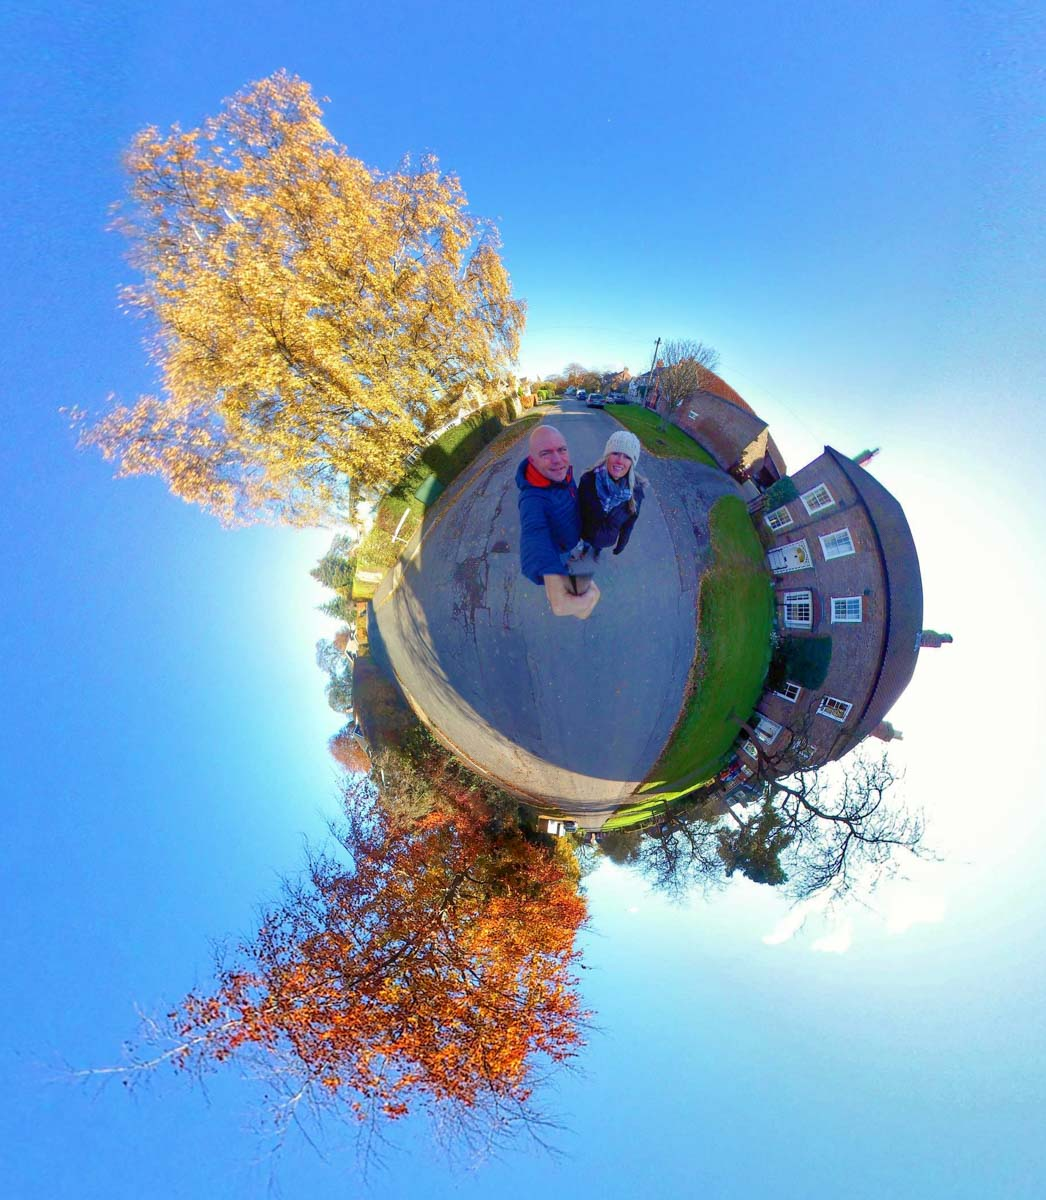 kodak-360-photos-10 Kodak Pixpro 4KVR360 - A World in 360 Degrees